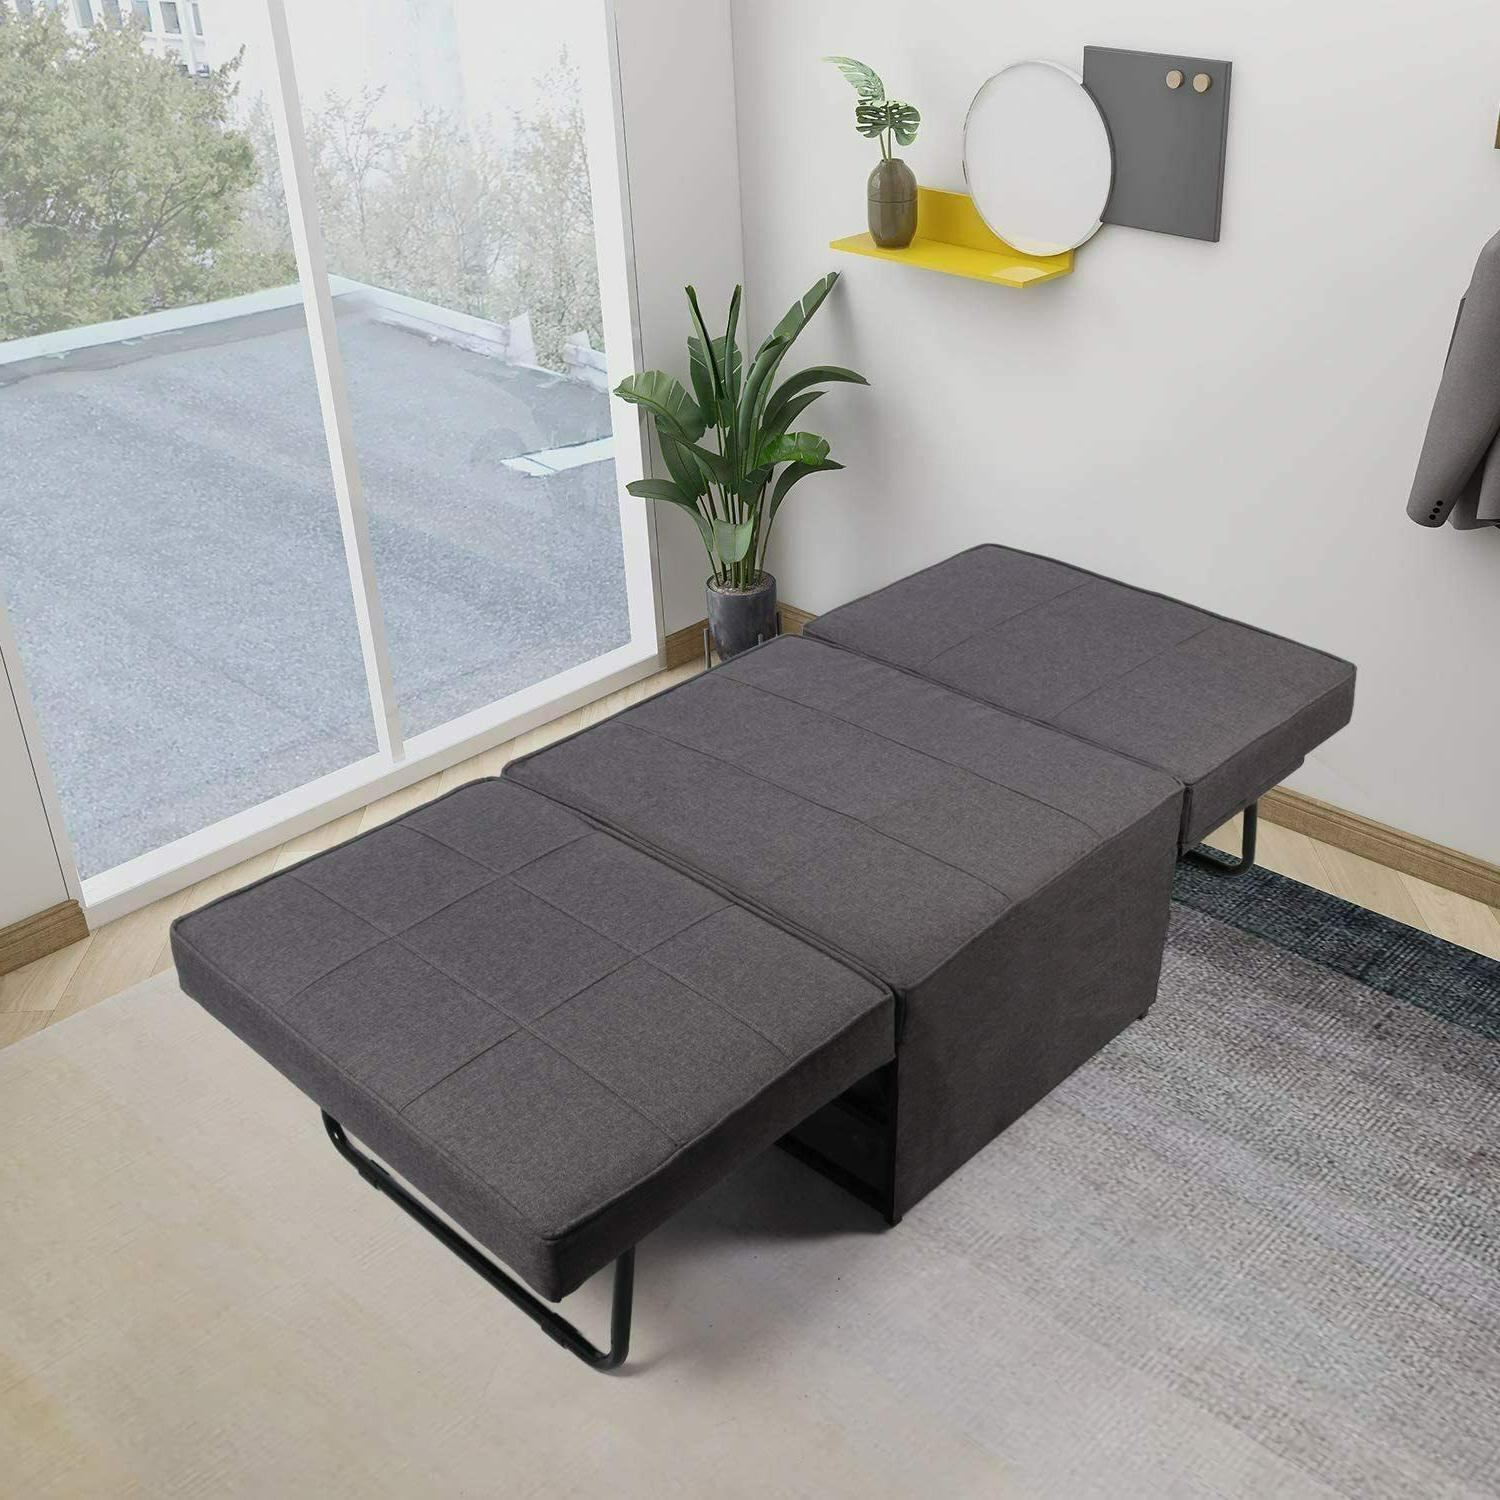 4-in-1 Sofa Sleeper Out Lounger Chair Ottoman